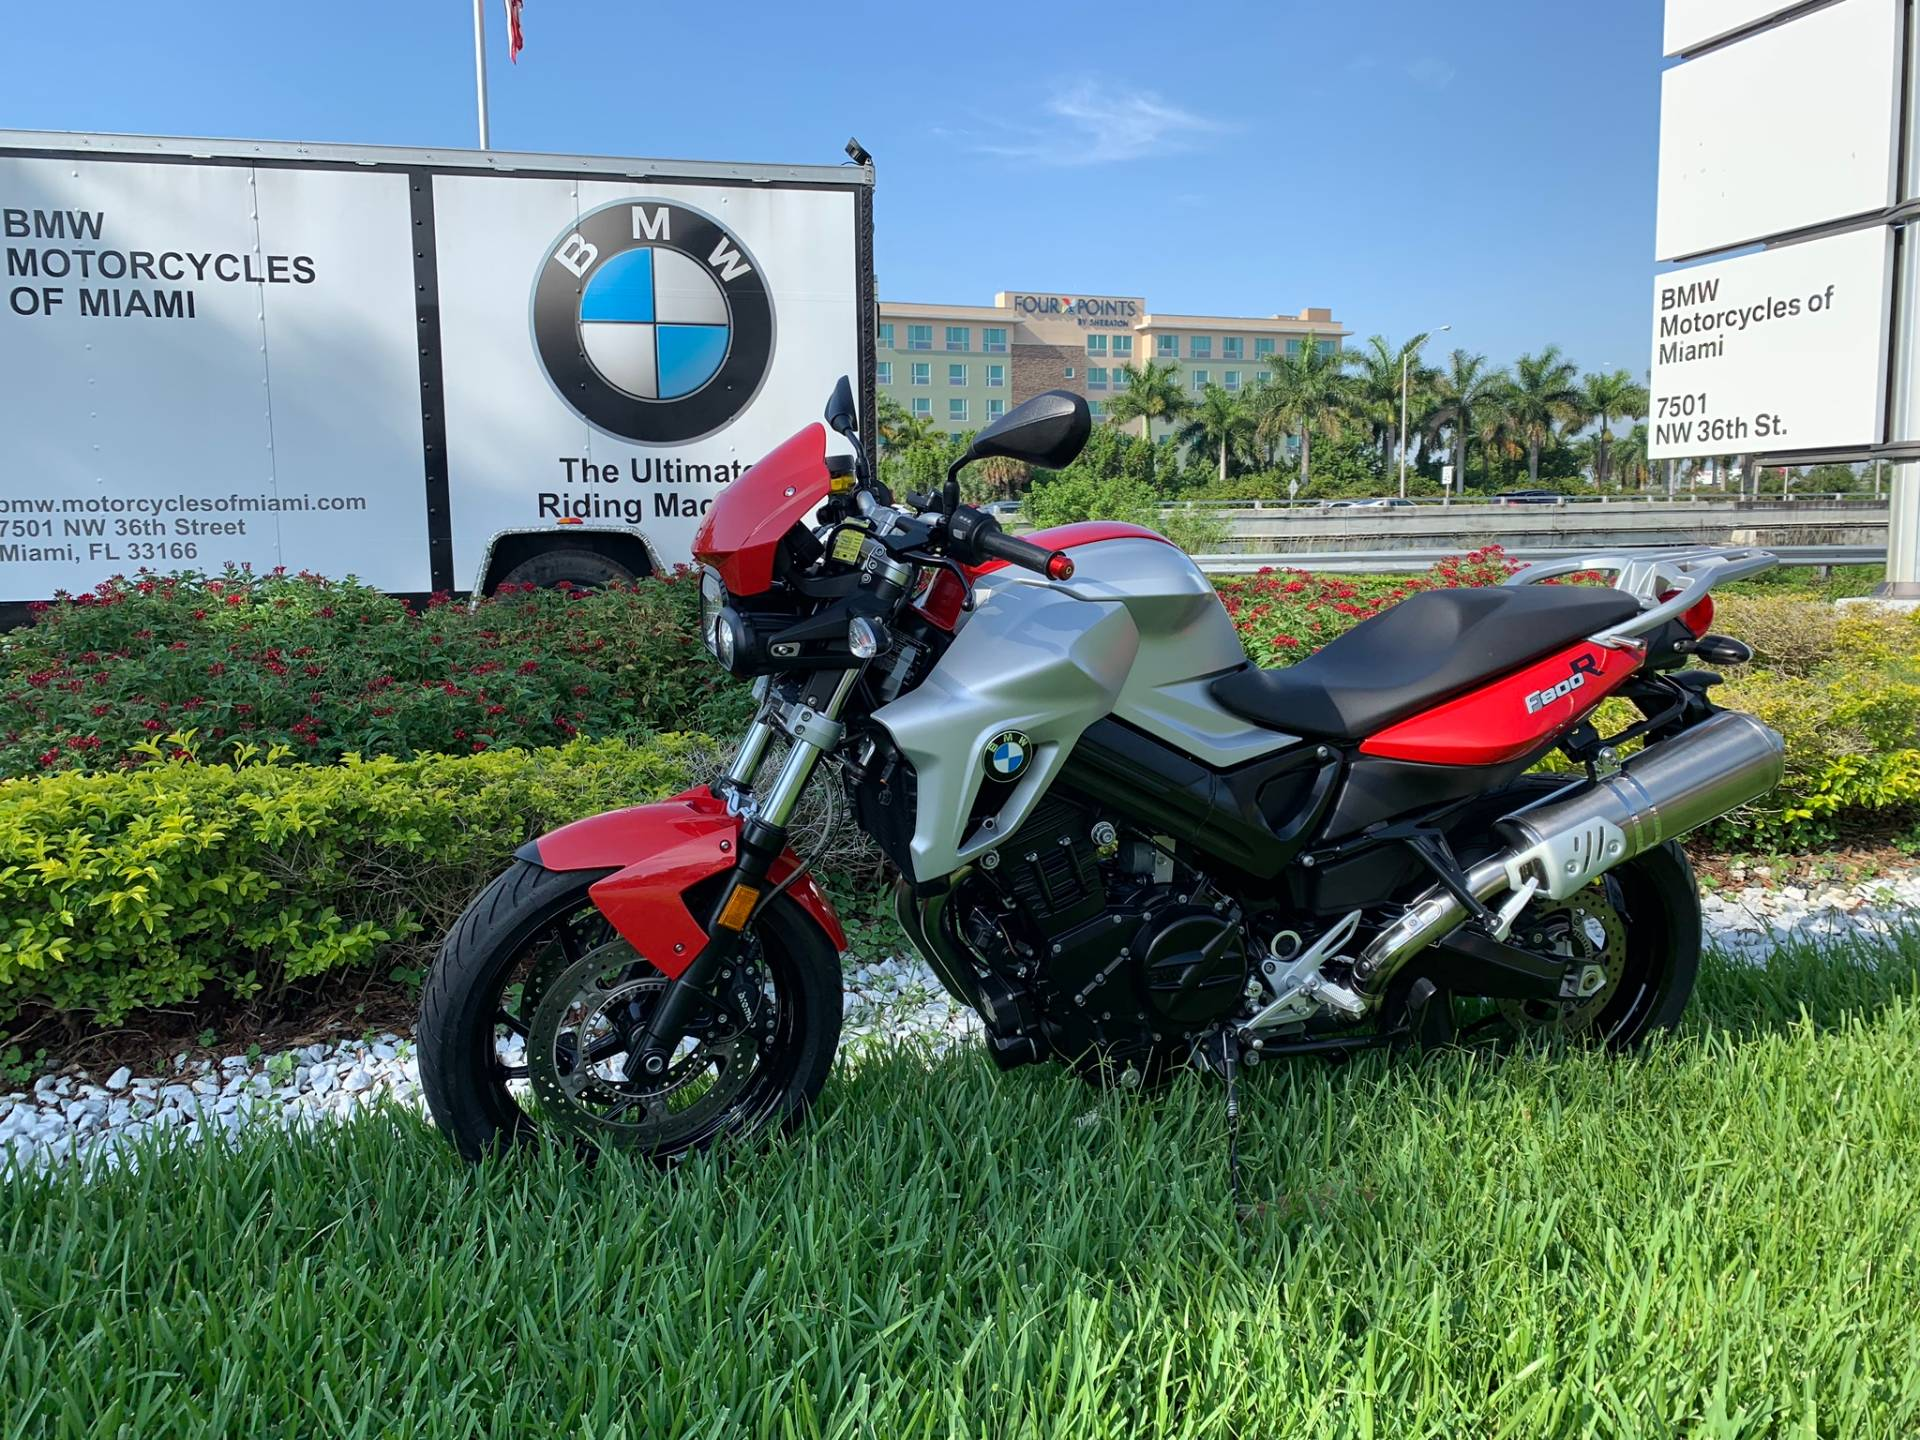 Used 2012 BMW F 800 R for sale, BMW F 800R for sale, BMW Motorcycle F800R, used BMW Roaster, Naked, 800, BMW. BMW Motorcycles of Miami, Motorcycles of Miami, Motorcycles Miami, New Motorcycles, Used Motorcycles, pre-owned. #BMWMotorcyclesOfMiami #MotorcyclesOfMiami. - Photo 6